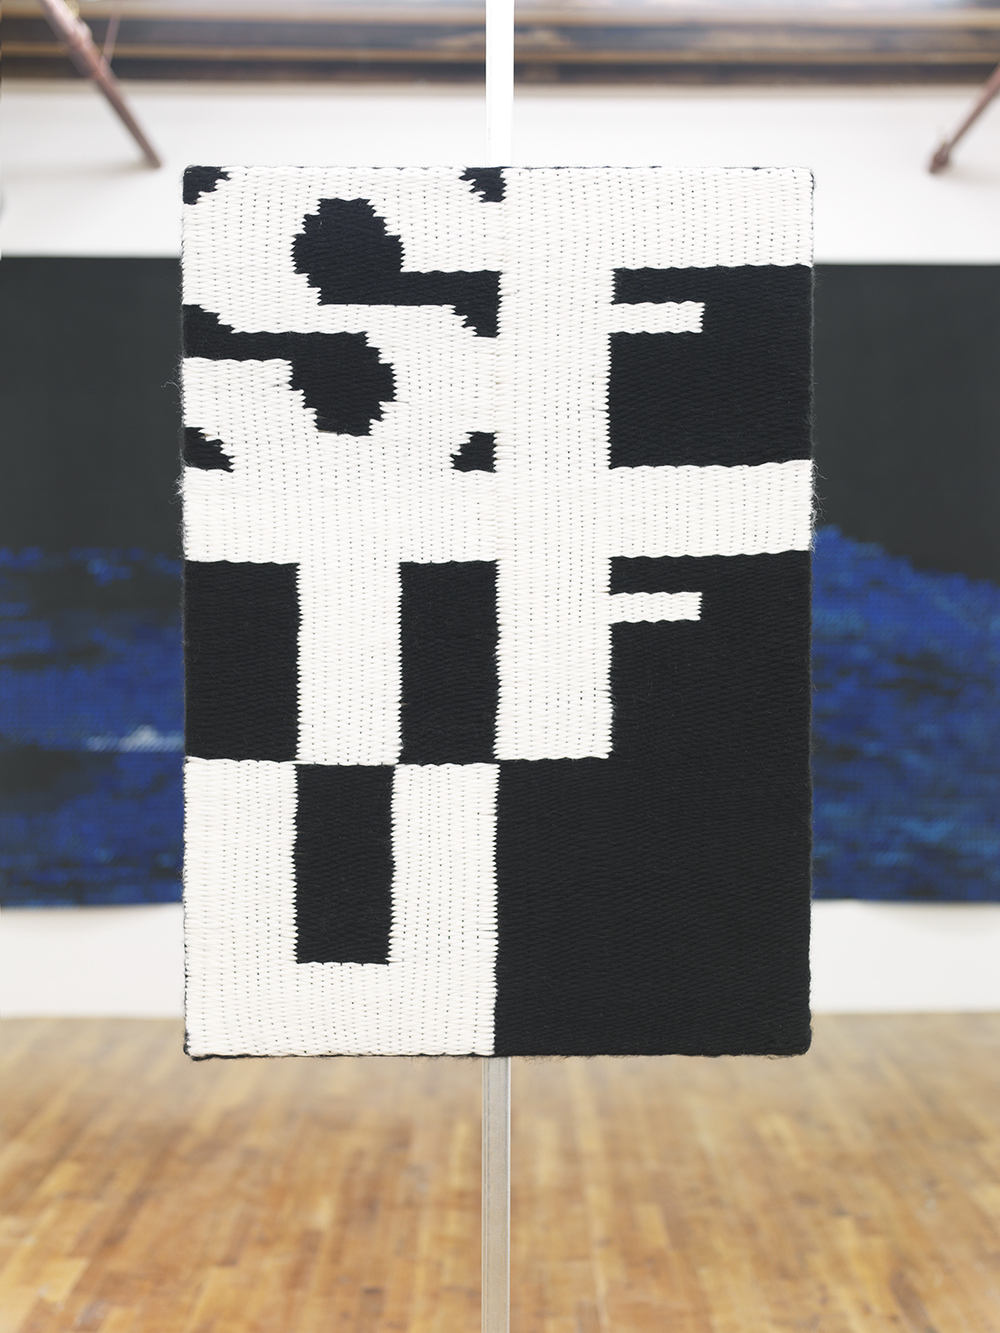 Stuff 2014 Woven wool on stretcher 58 x 48 inches